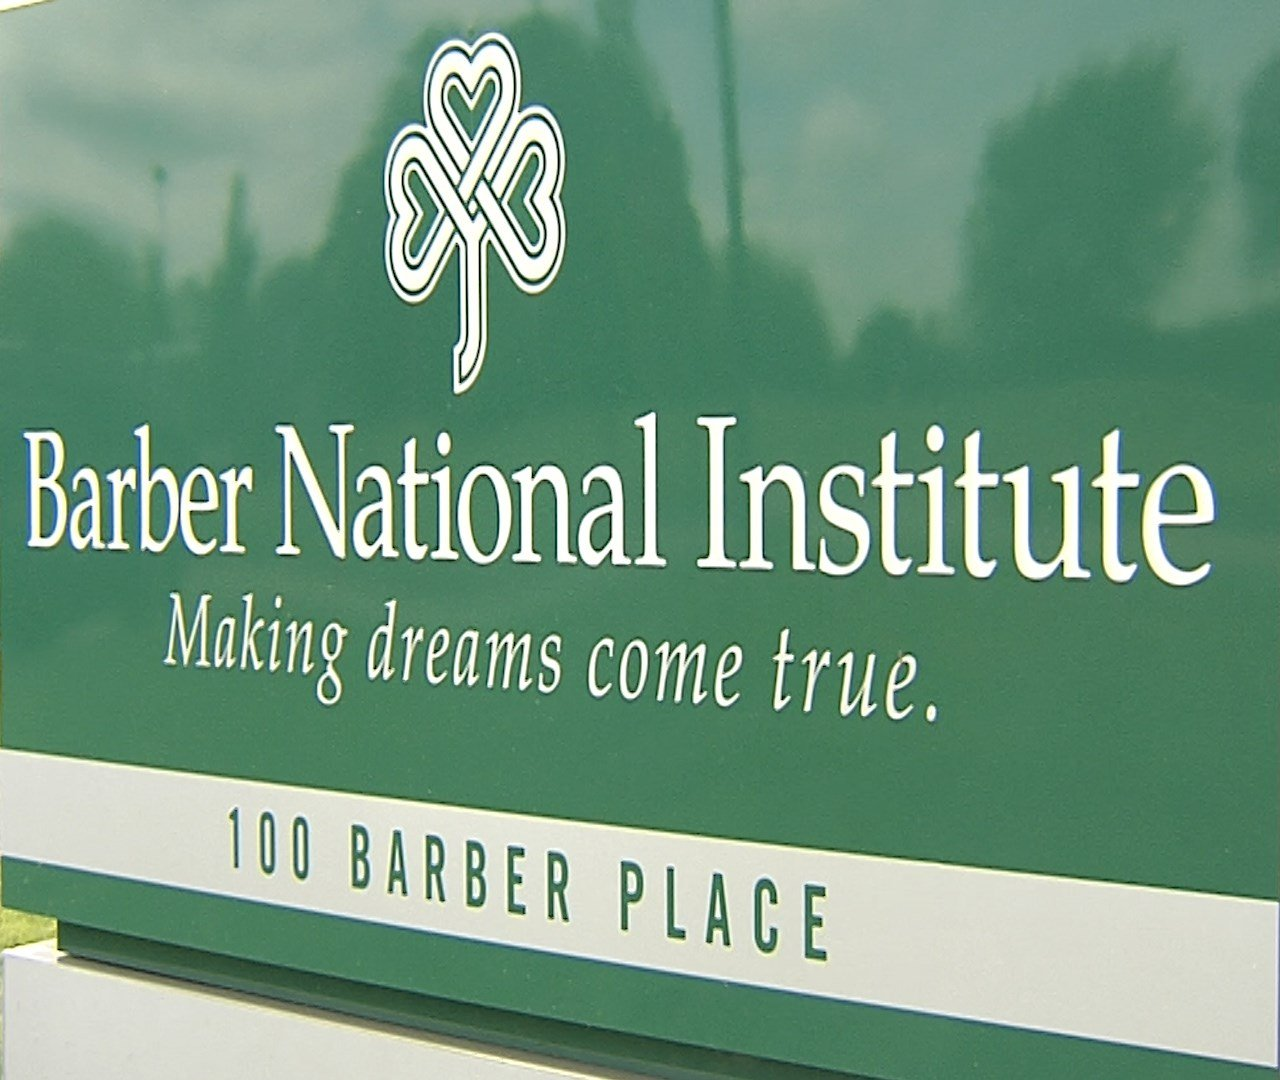 Barber Institute Erie : Barber National Institute: Giving You The Business - Erie News Now ...